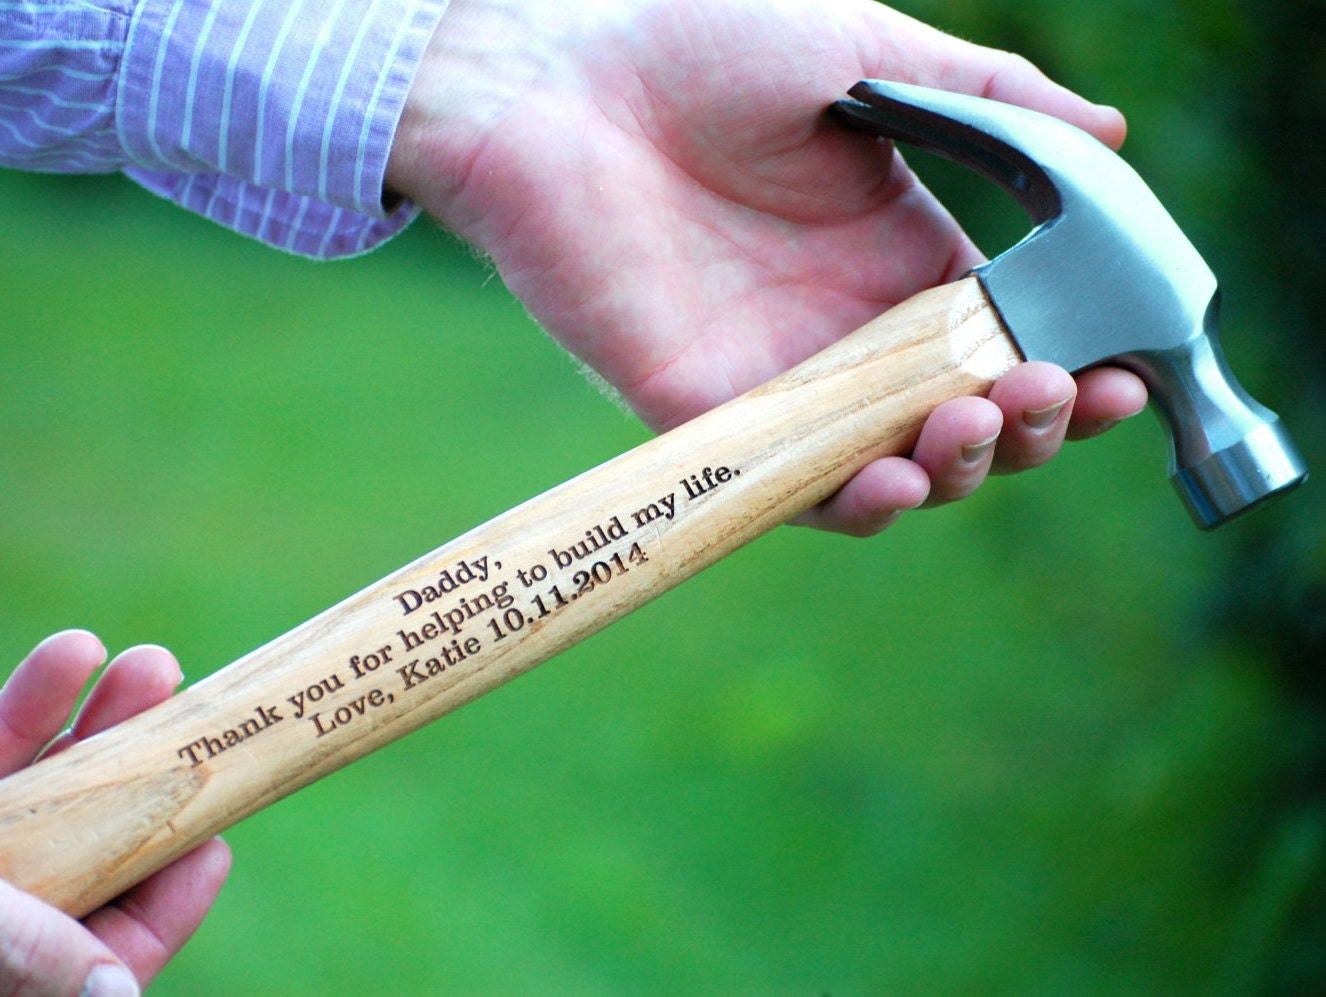 Gift Ideas For Groom On Wedding Day: Personalized Hammer Father Of The Bride/Groom Hammer